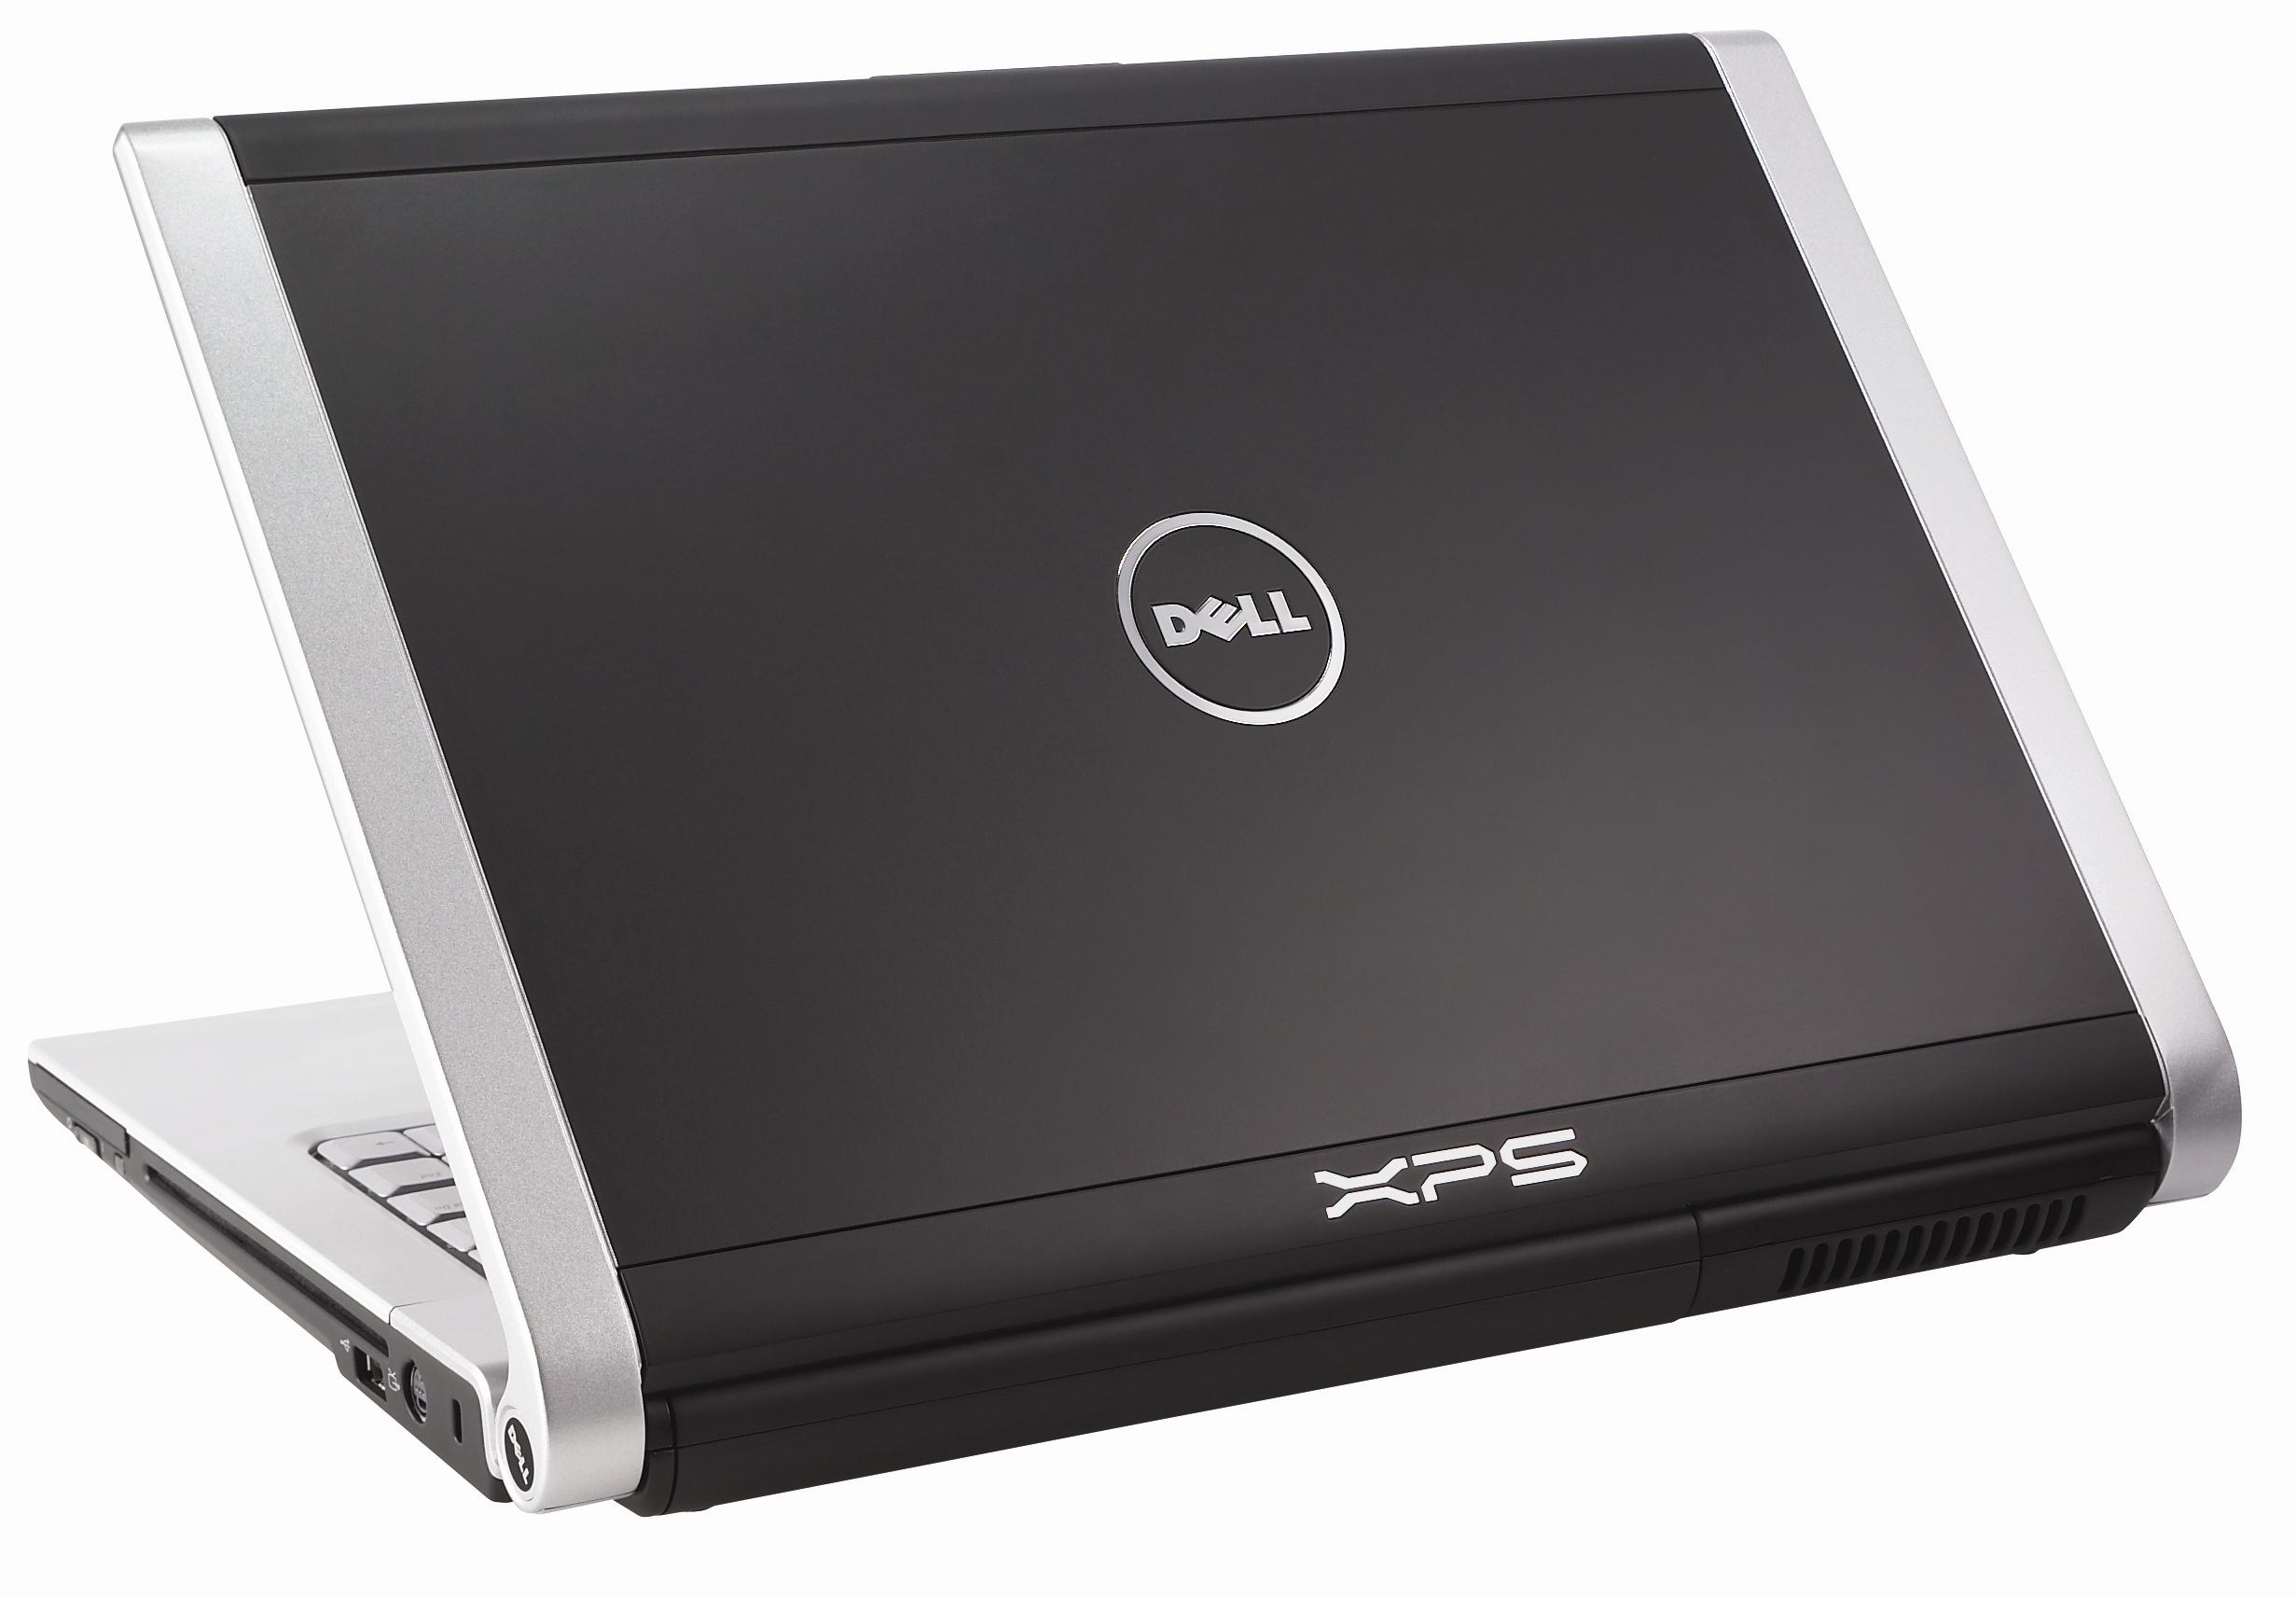 Dell Xps M1530 Bluetooth Driver Vista Download